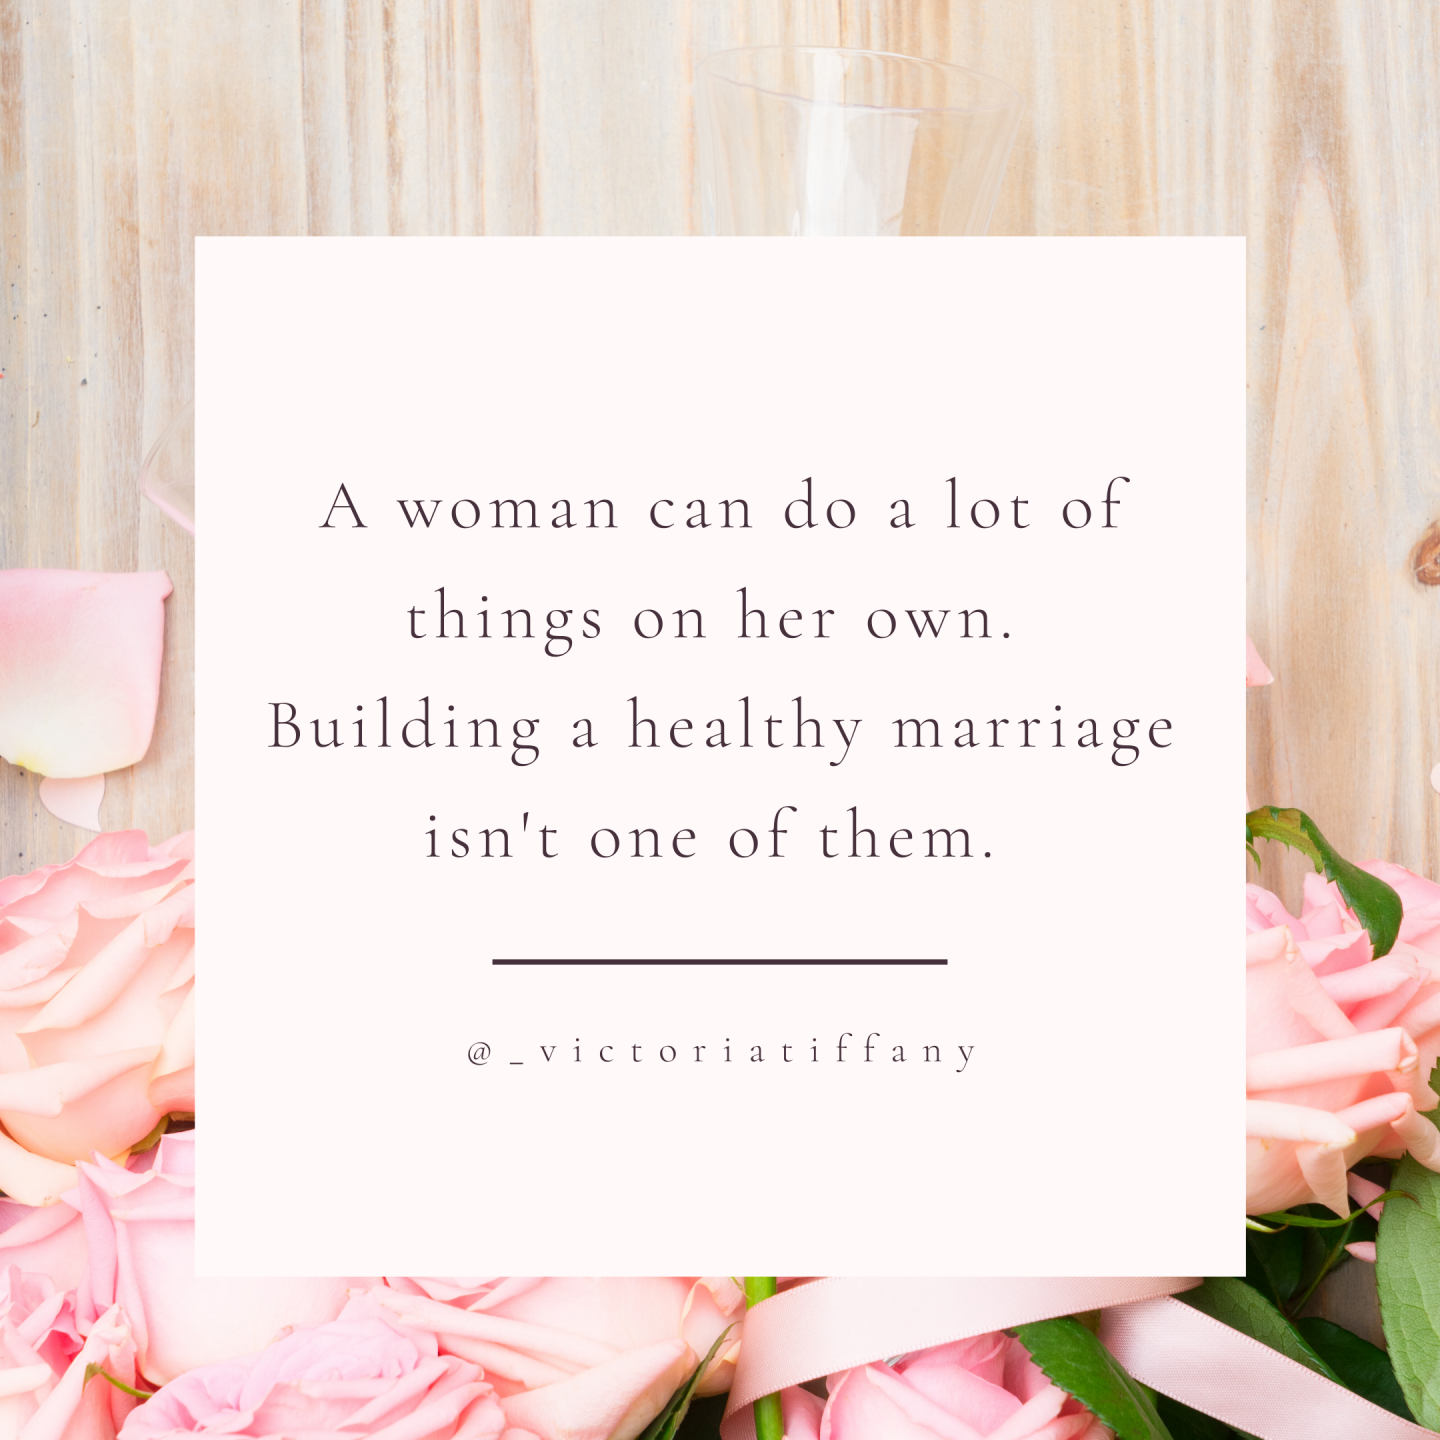 Whether you have been married for one year or for one hundred years, couples should never stop doing the daily work it takes to build a healthy marriage. Here are 5 Everyday Habits That Build a Healthy Marriage.